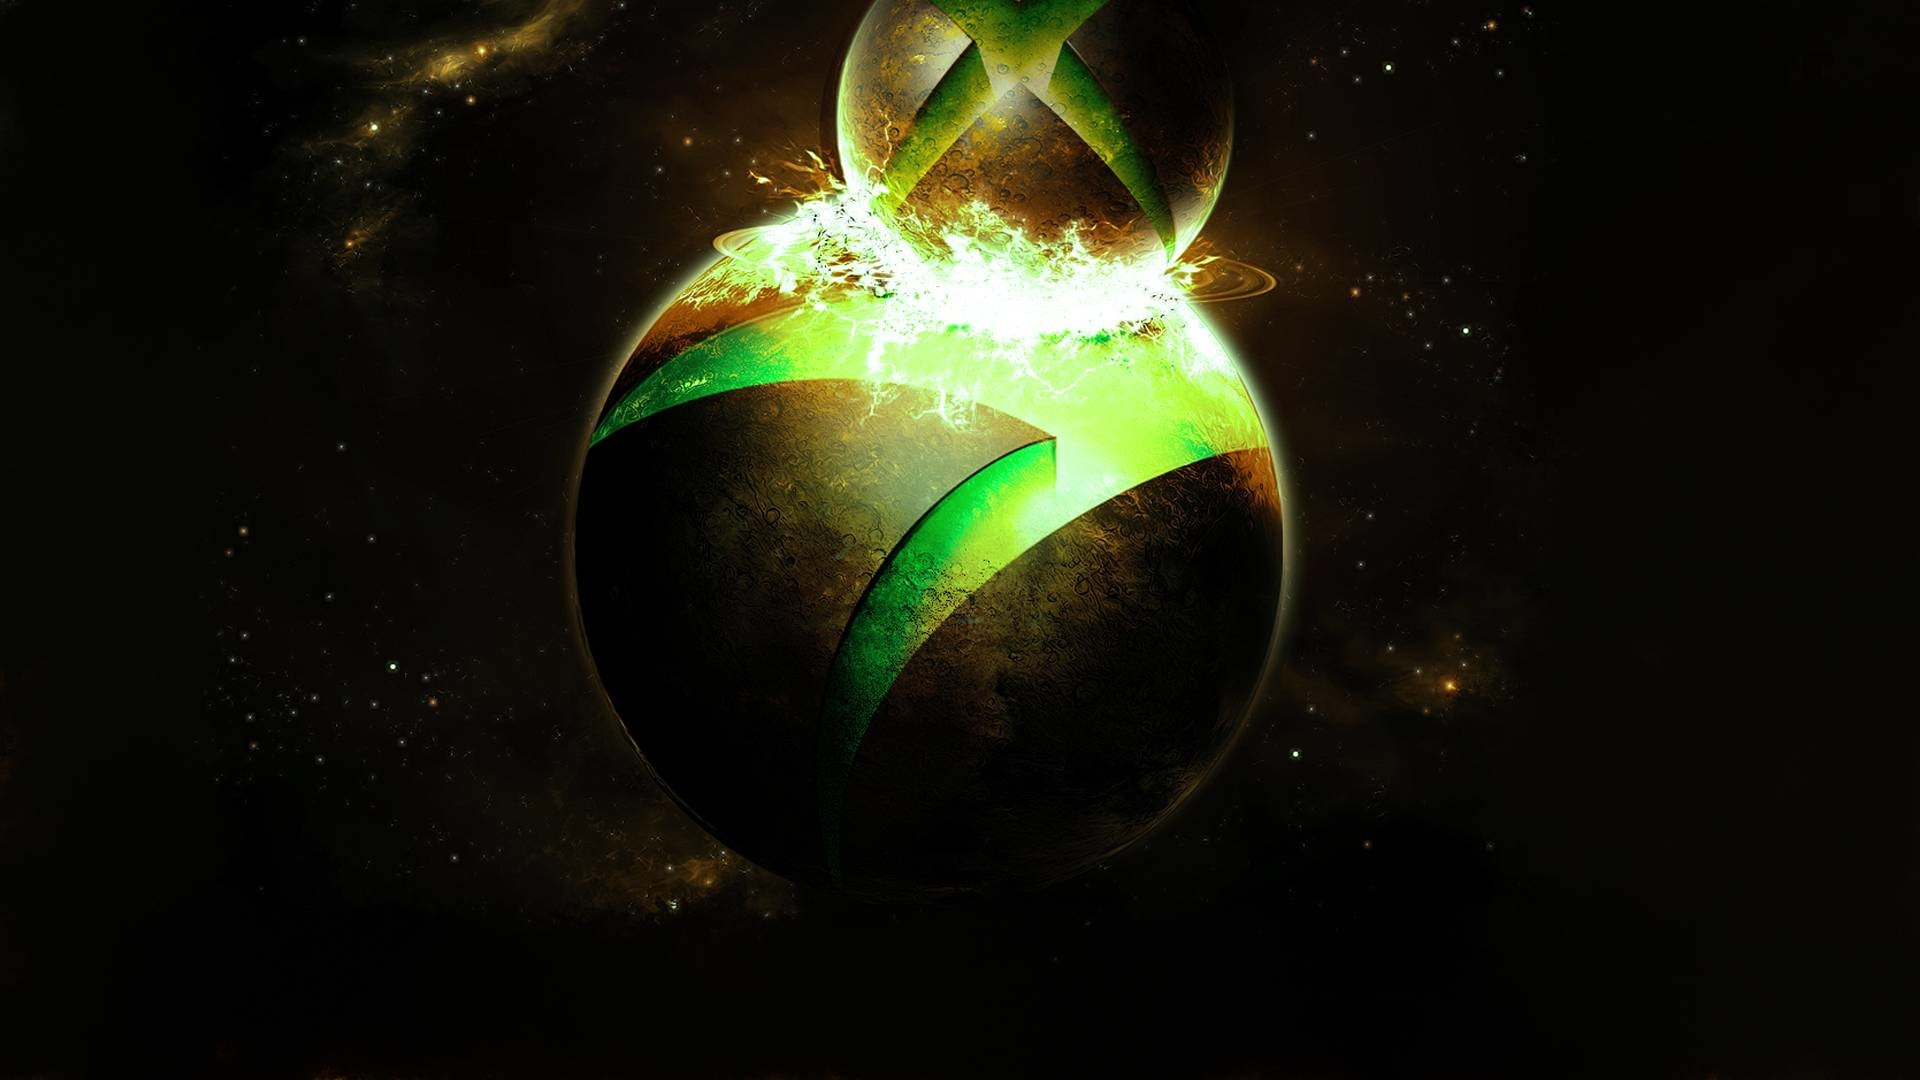 Xbox One Wallpapers - Xbox Hd Background - HD Wallpaper